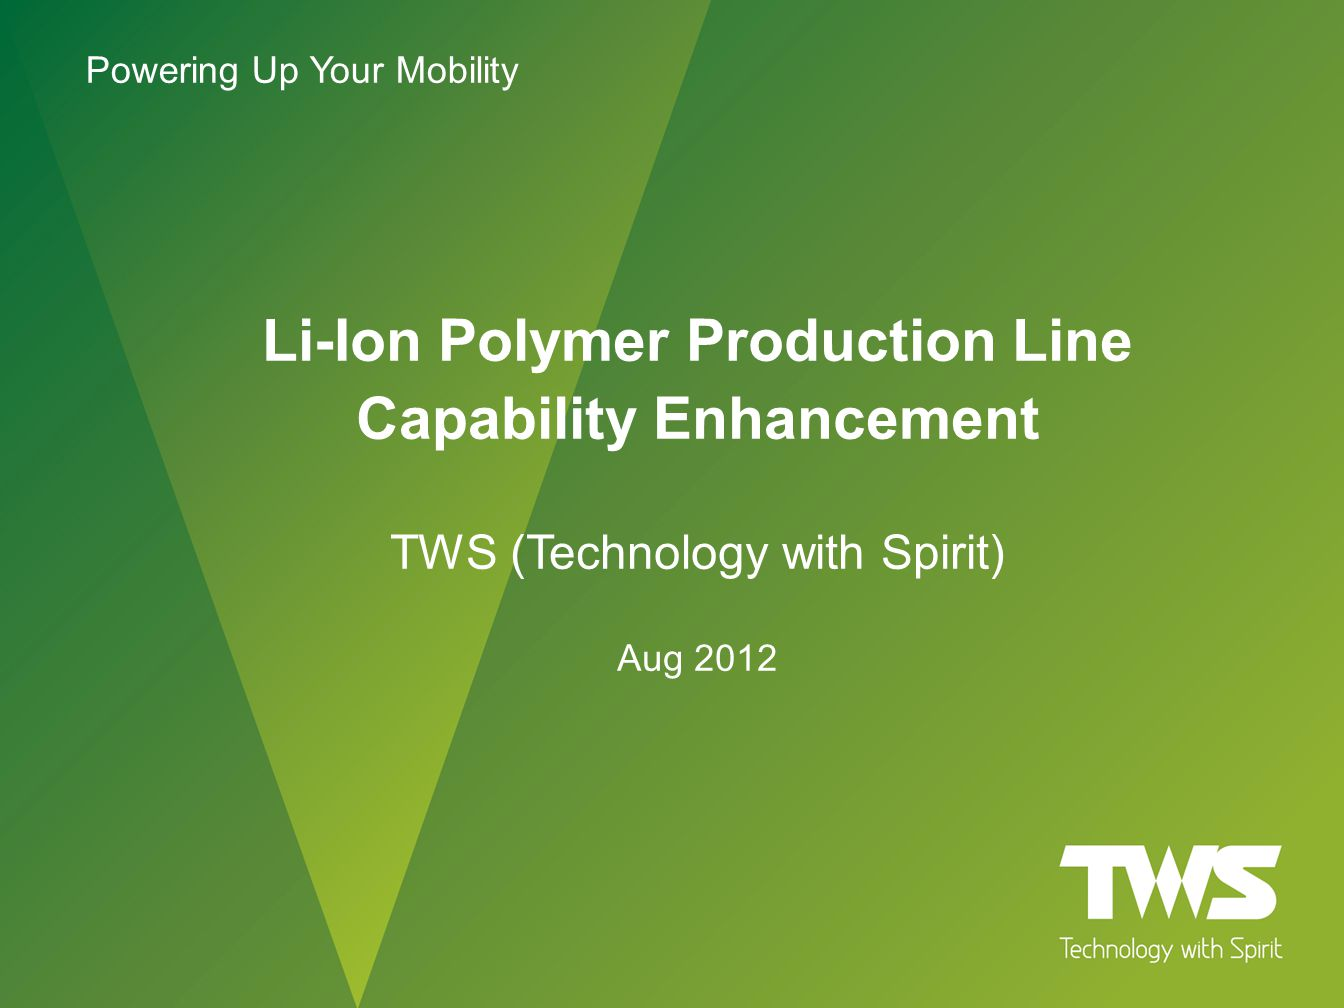 www.tws.com TWS Confidential Background In 2012, TWS invested resources to significantly improve and enhance its Lithium Polymer pack production lines.